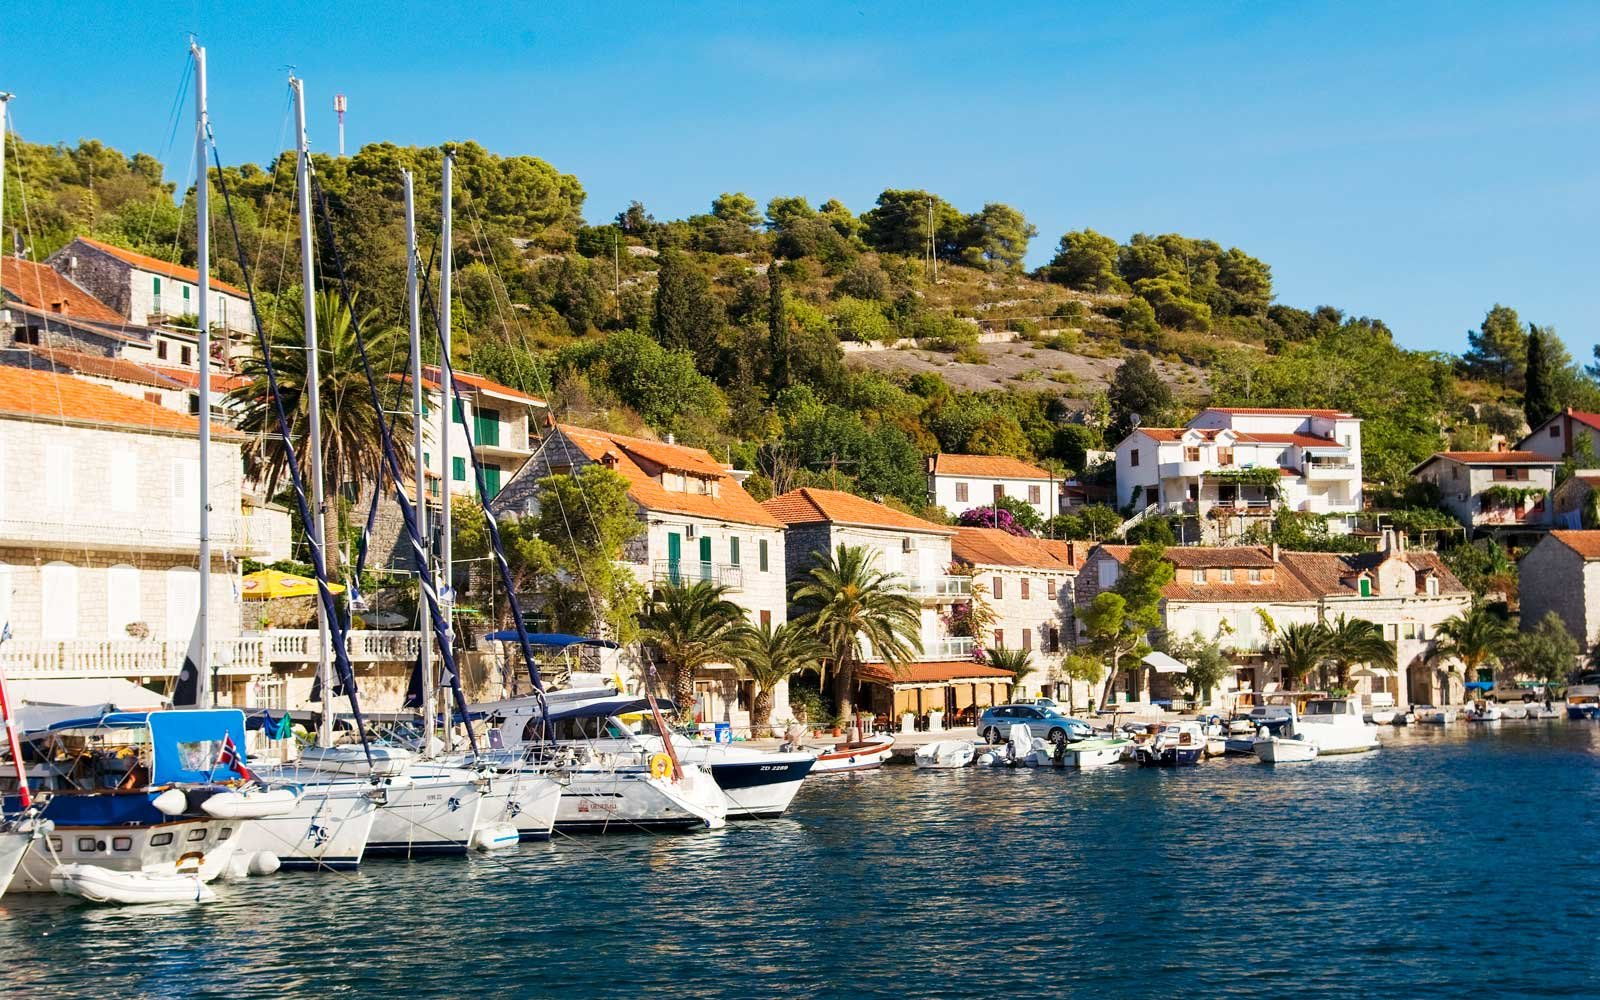 Fishing boats and charter sailboats along waterfront of Solta, Croatia